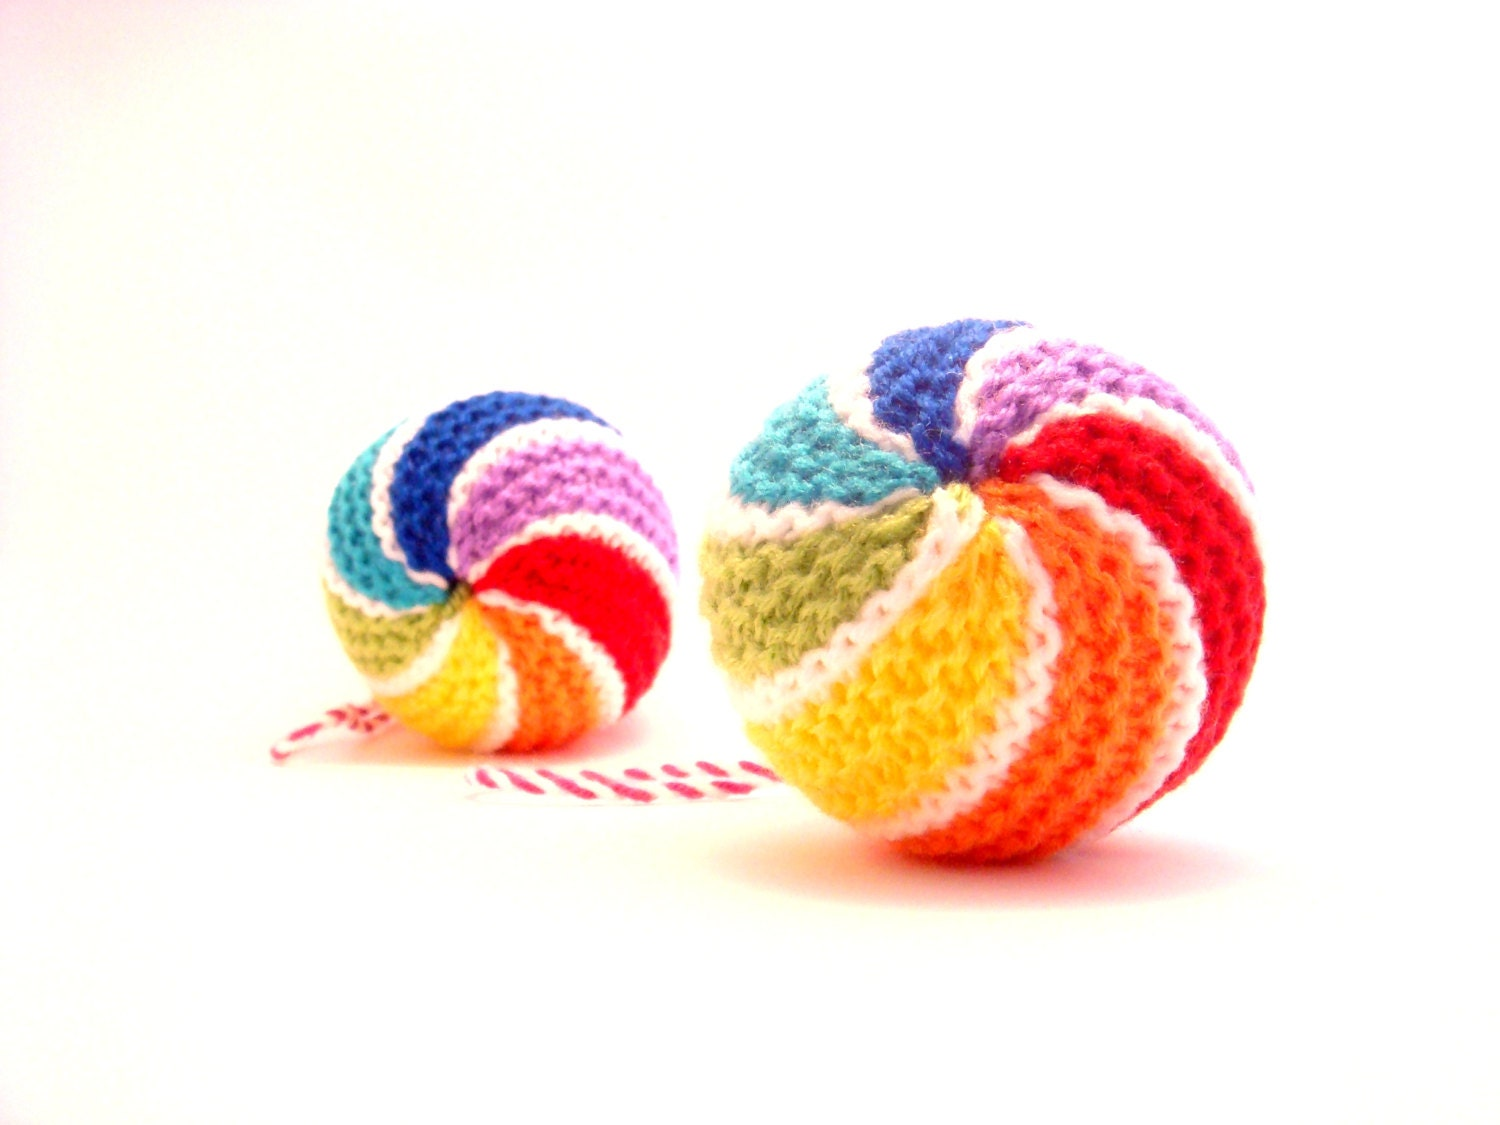 Baby first toy, new baby rattle toy rainbow , handmade knitted rattle toy - Agutik